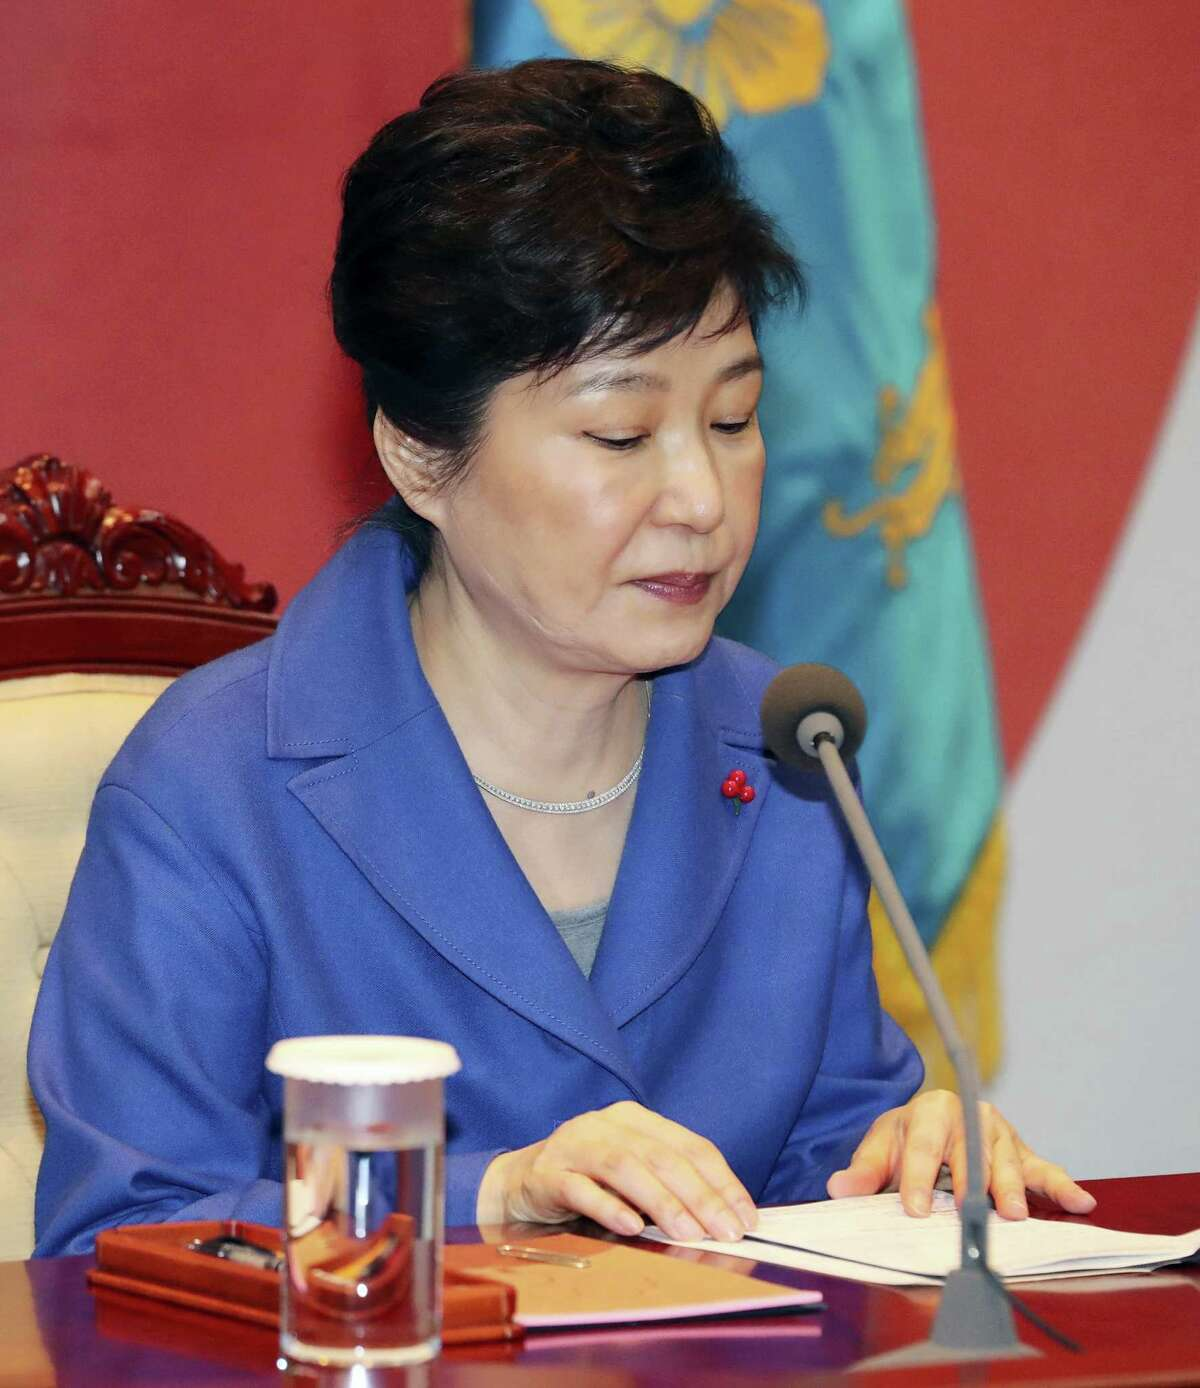 South Korean President Park Geun-hye attends an emergency Cabinet meeting at the presidential office in Seoul, South Korea, Friday, Dec. 9, 2016. South Korean lawmakers on Friday voted to impeach Park, a stunning and swift fall for the country's first female leader amid protests that drew millions into the streets in united fury.